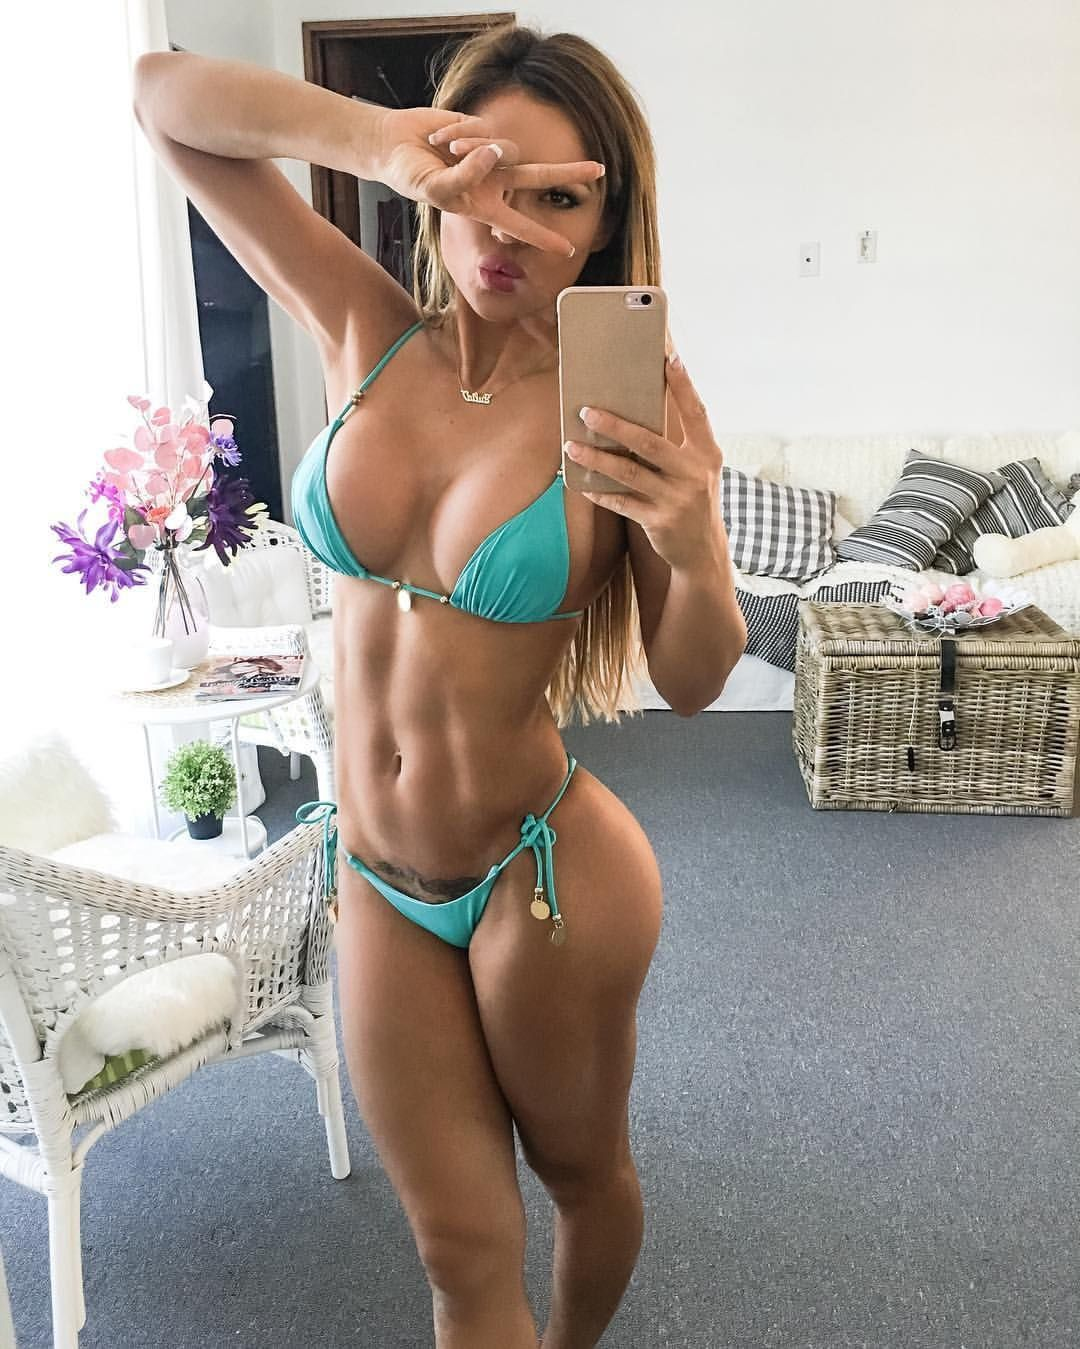 Pin On Fit People